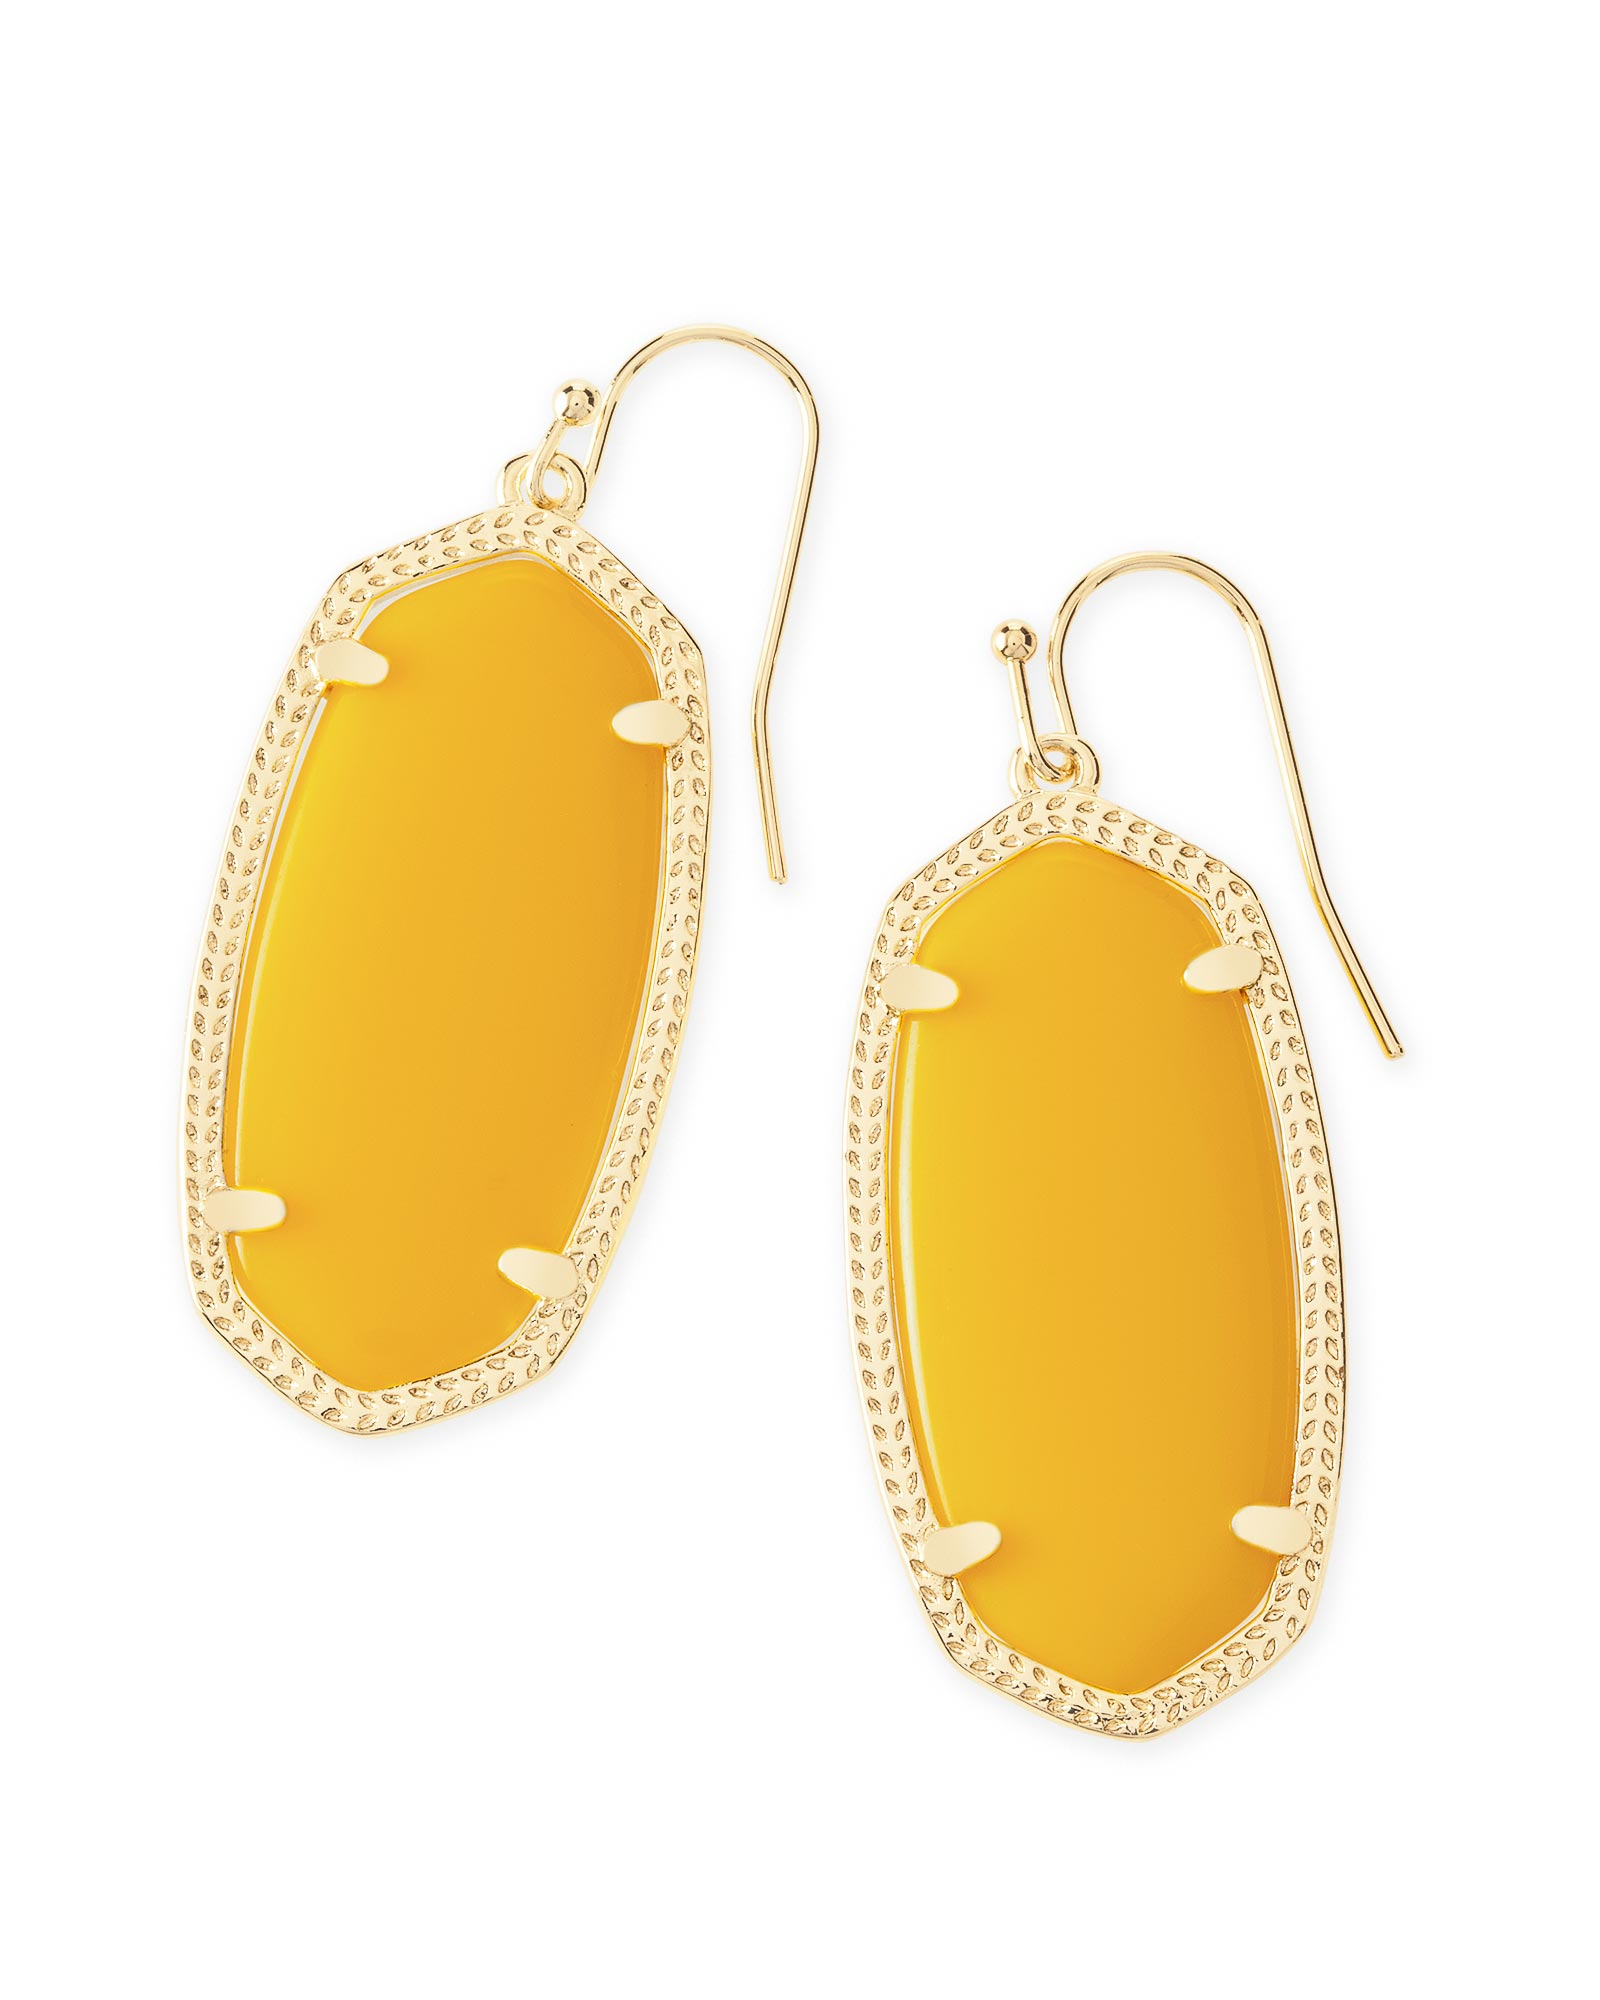 Elle Earrings in Yellow